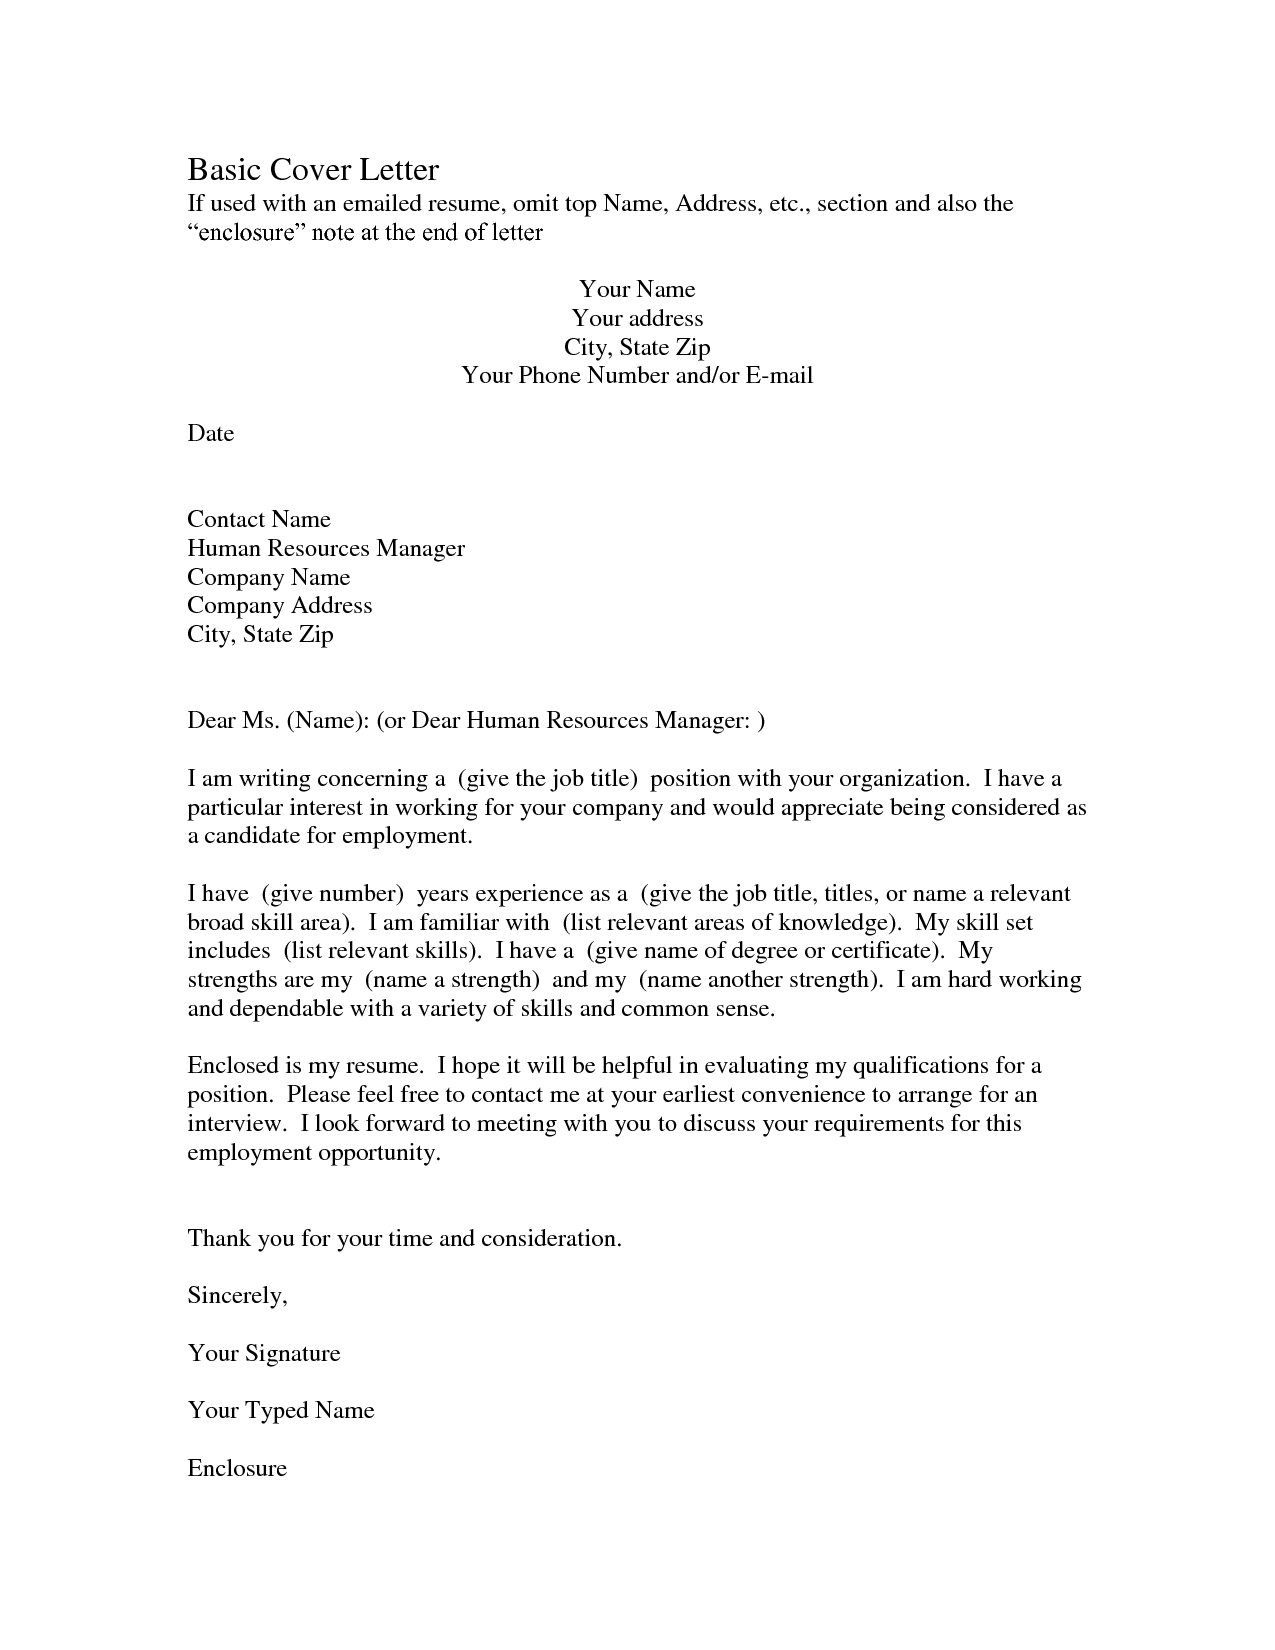 this cover letter sample shows how a  resumes for teachers